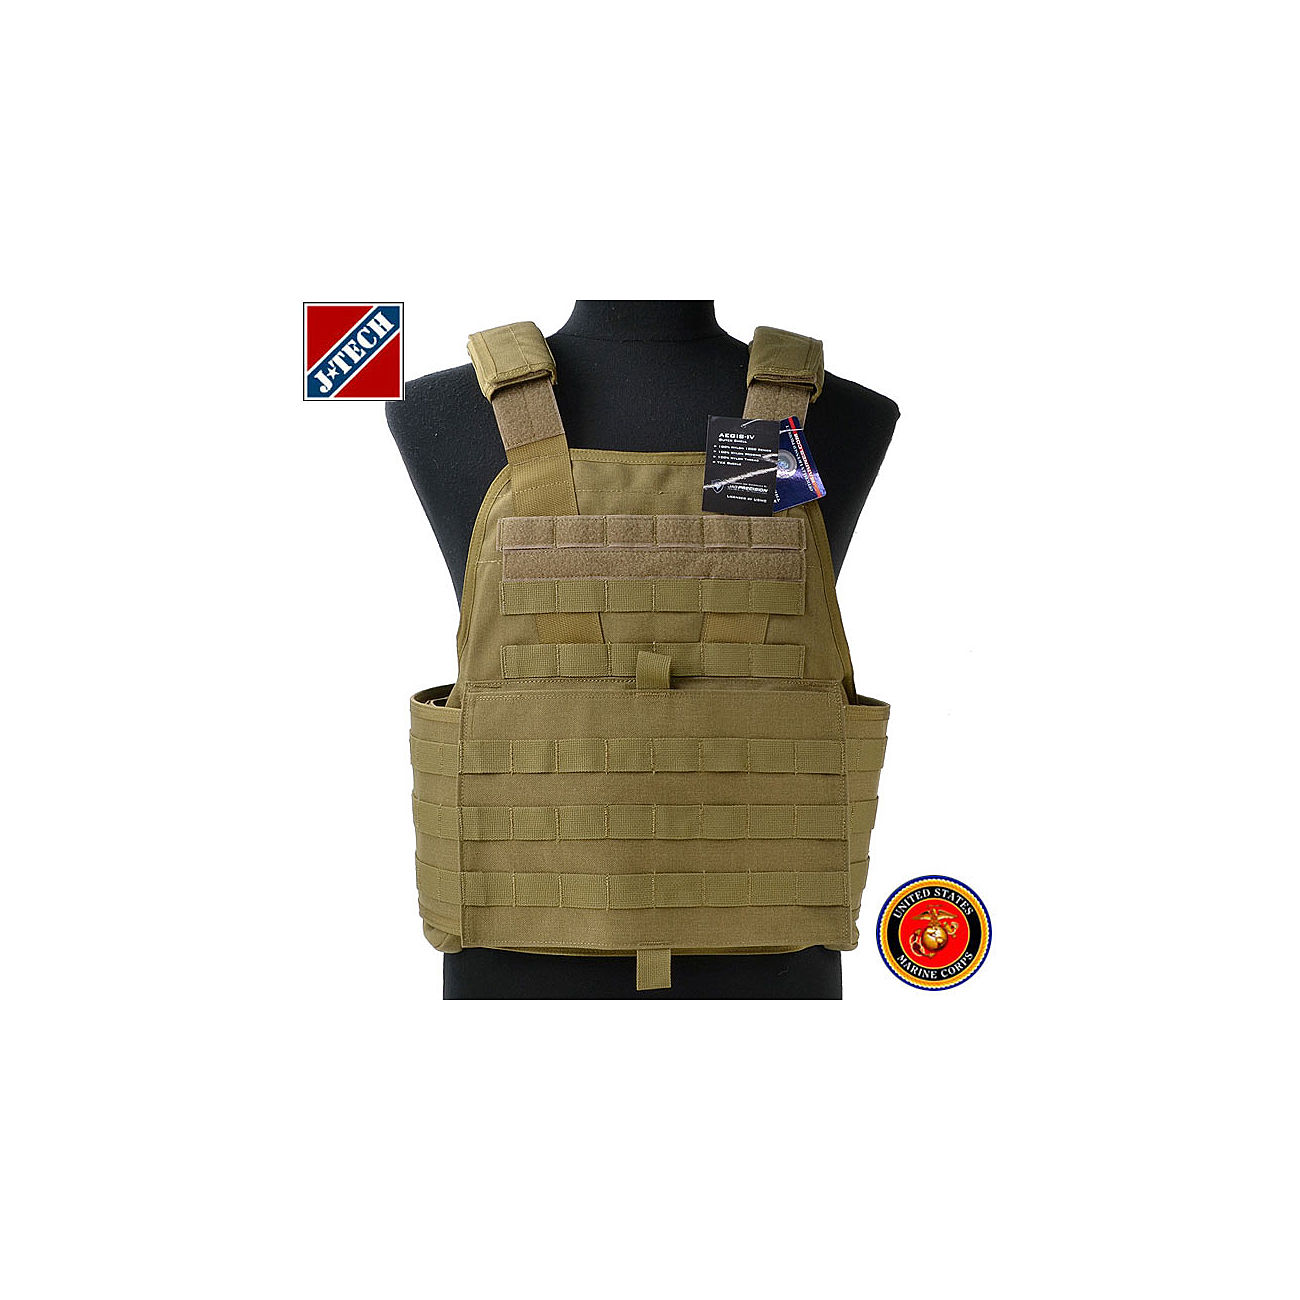 J-Tech USMC Aegis IV Outer Shell Plate Carrier coyote 0